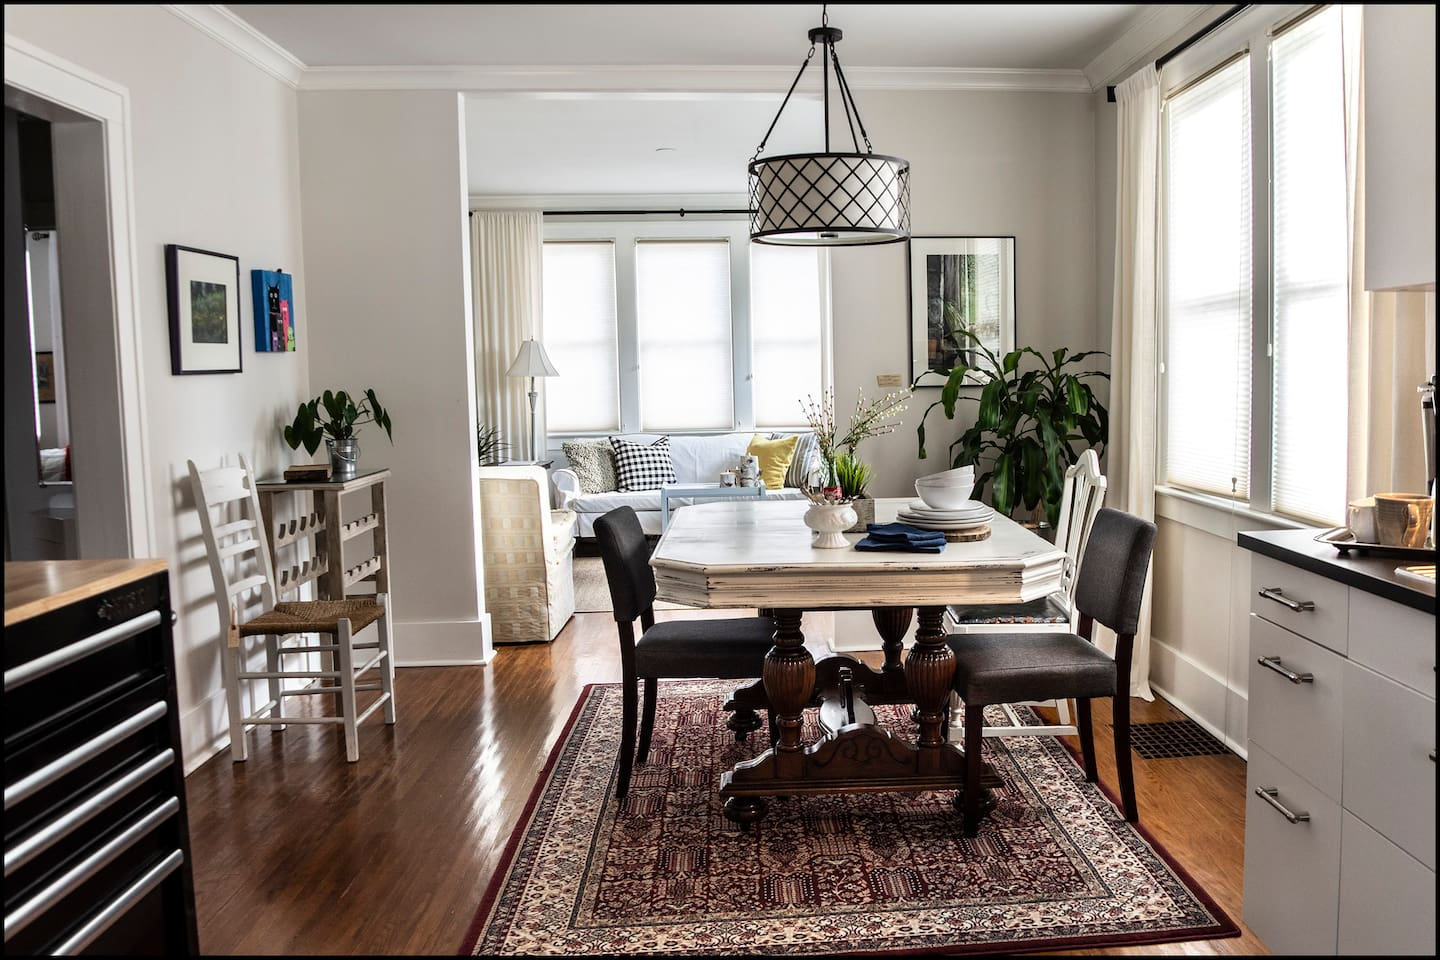 Open concept living, dining and kitchen is flooded with light and loaded with charm.  Original oak hardwood floors. Comfortable furniture everywhere.